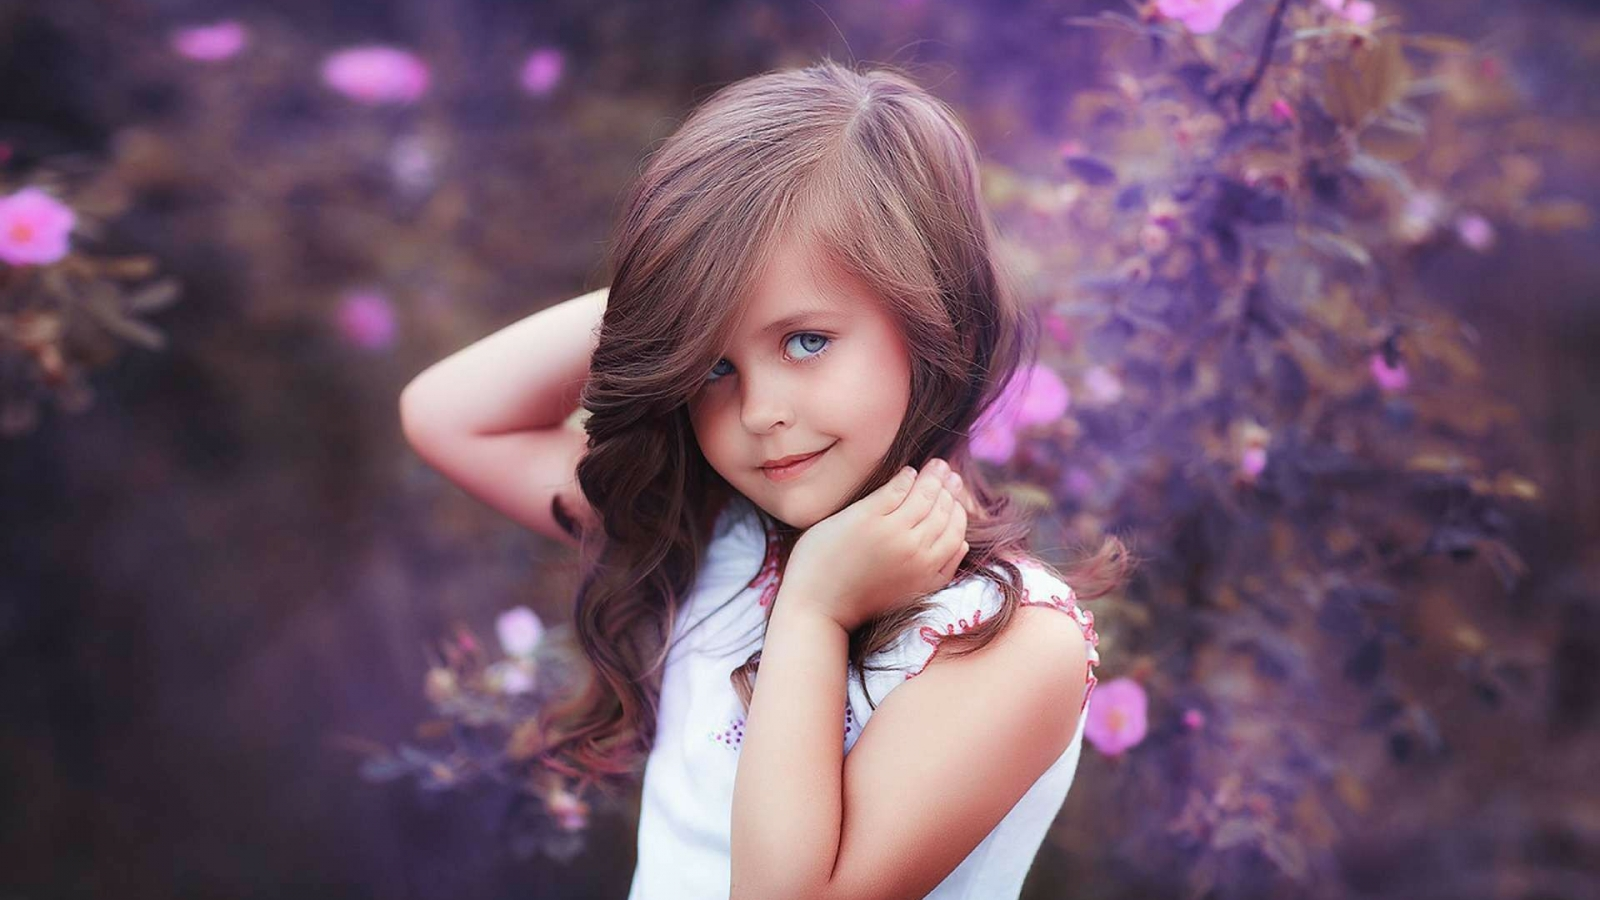 Cute sweet baby girls hd wallpapers download hd wallpapers hd cute sweet baby girls hd wallpapers download voltagebd Choice Image